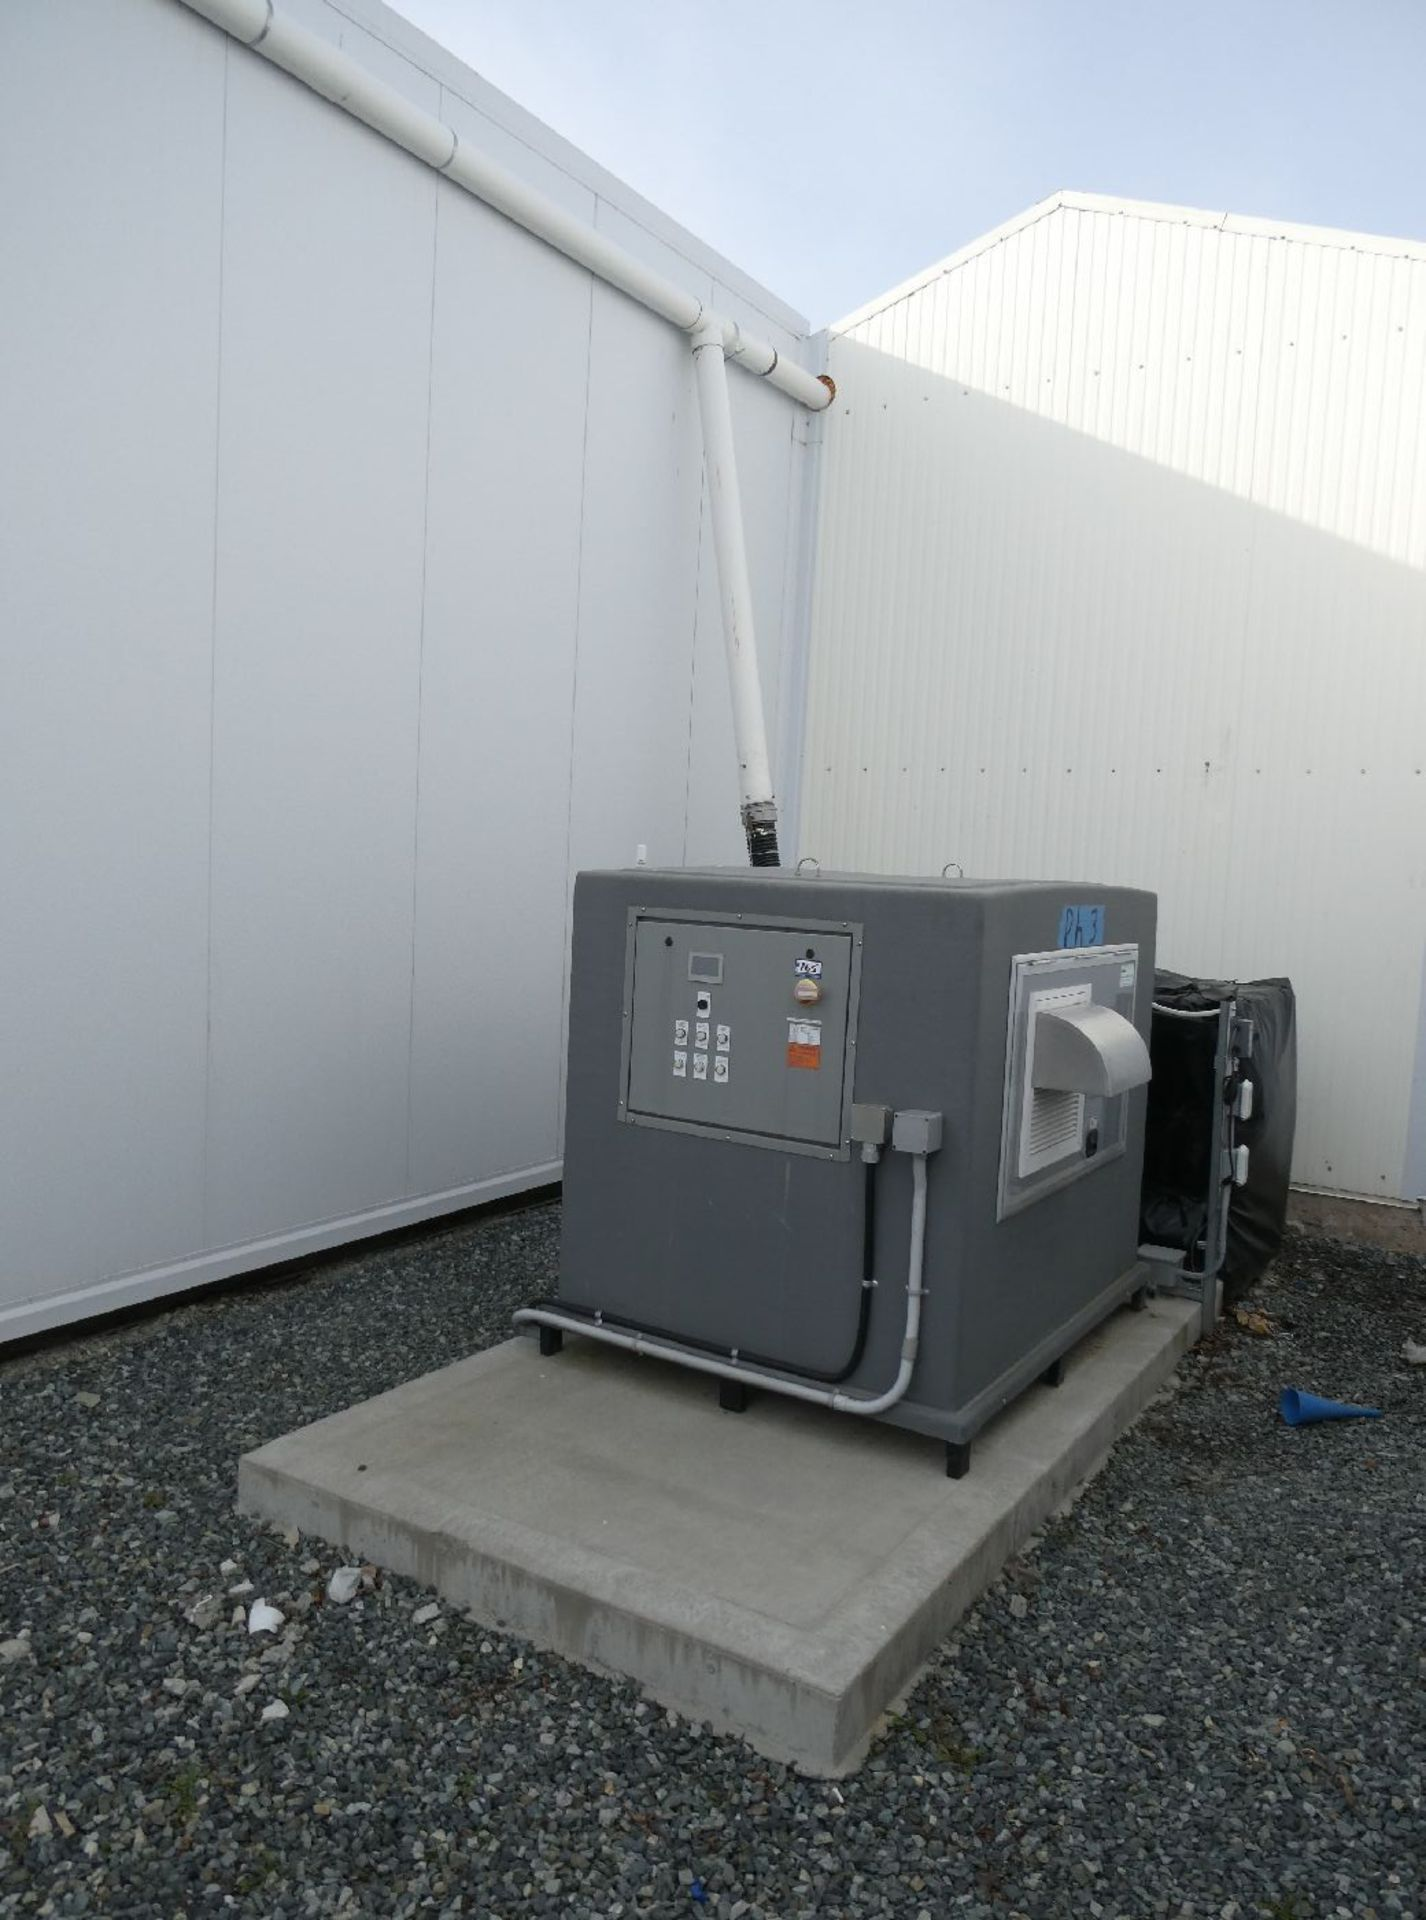 Byers Scientific 1812202 Odour Management System - Image 2 of 3